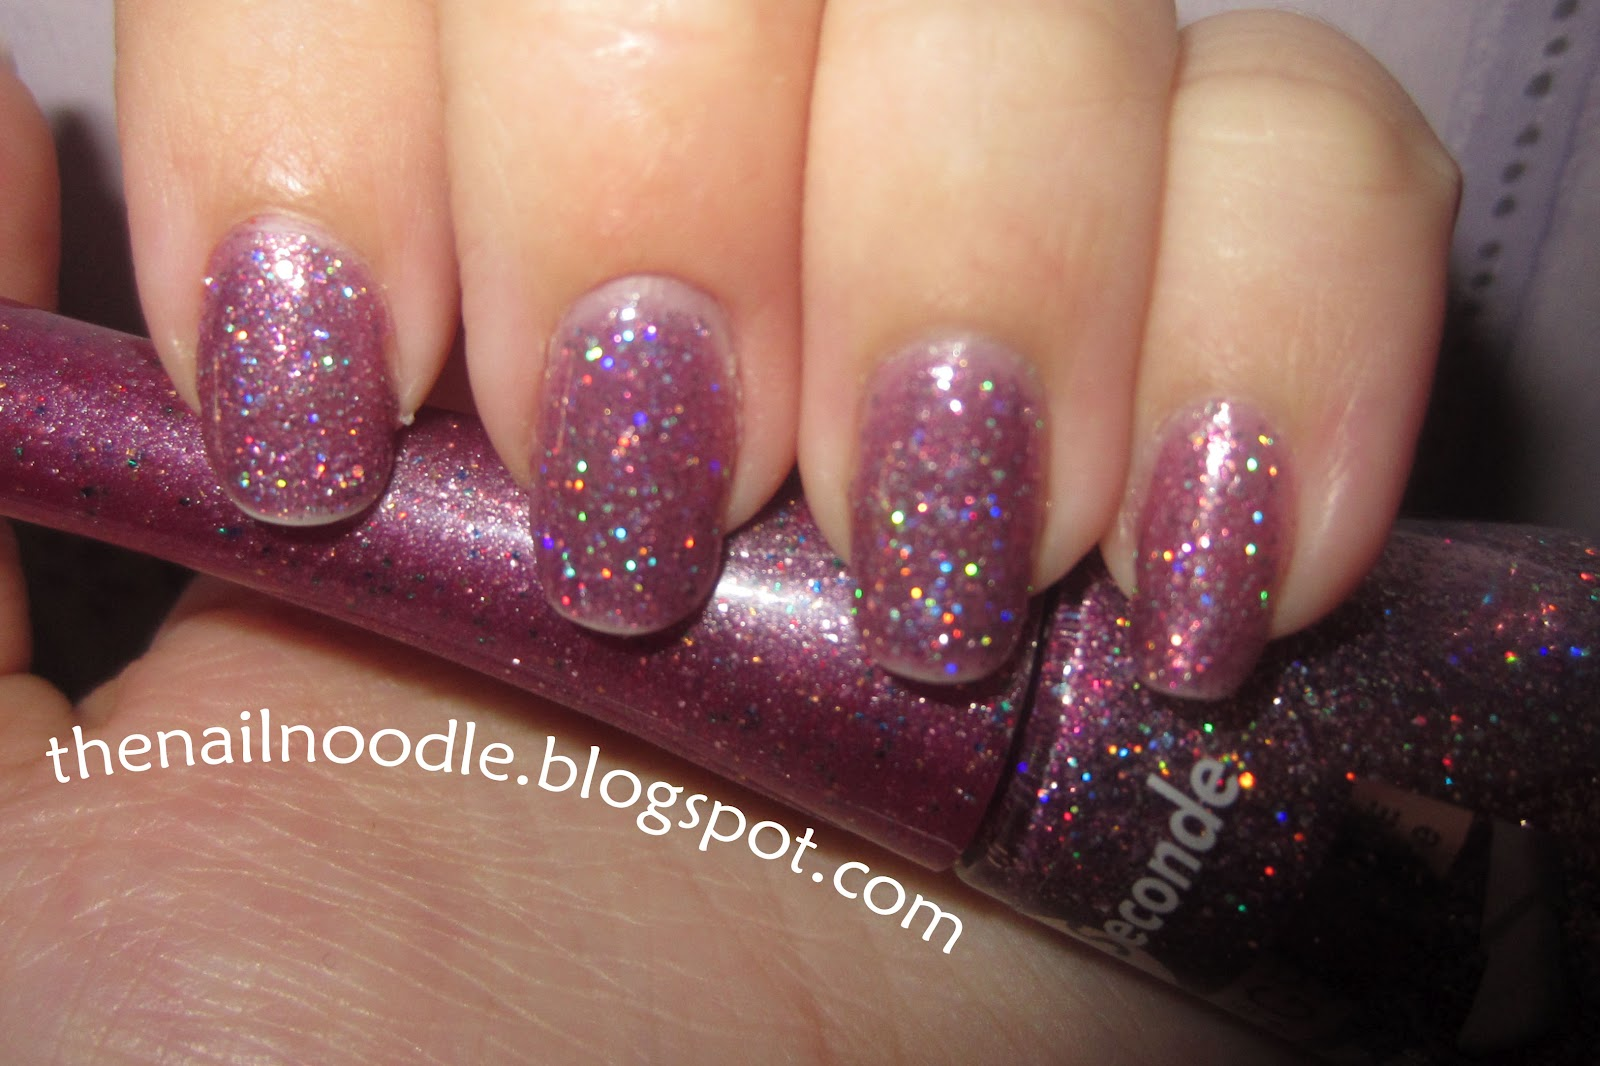 The Nail Noodle Bourjois 1 Seconde Rainbow Apparition Nail Polish